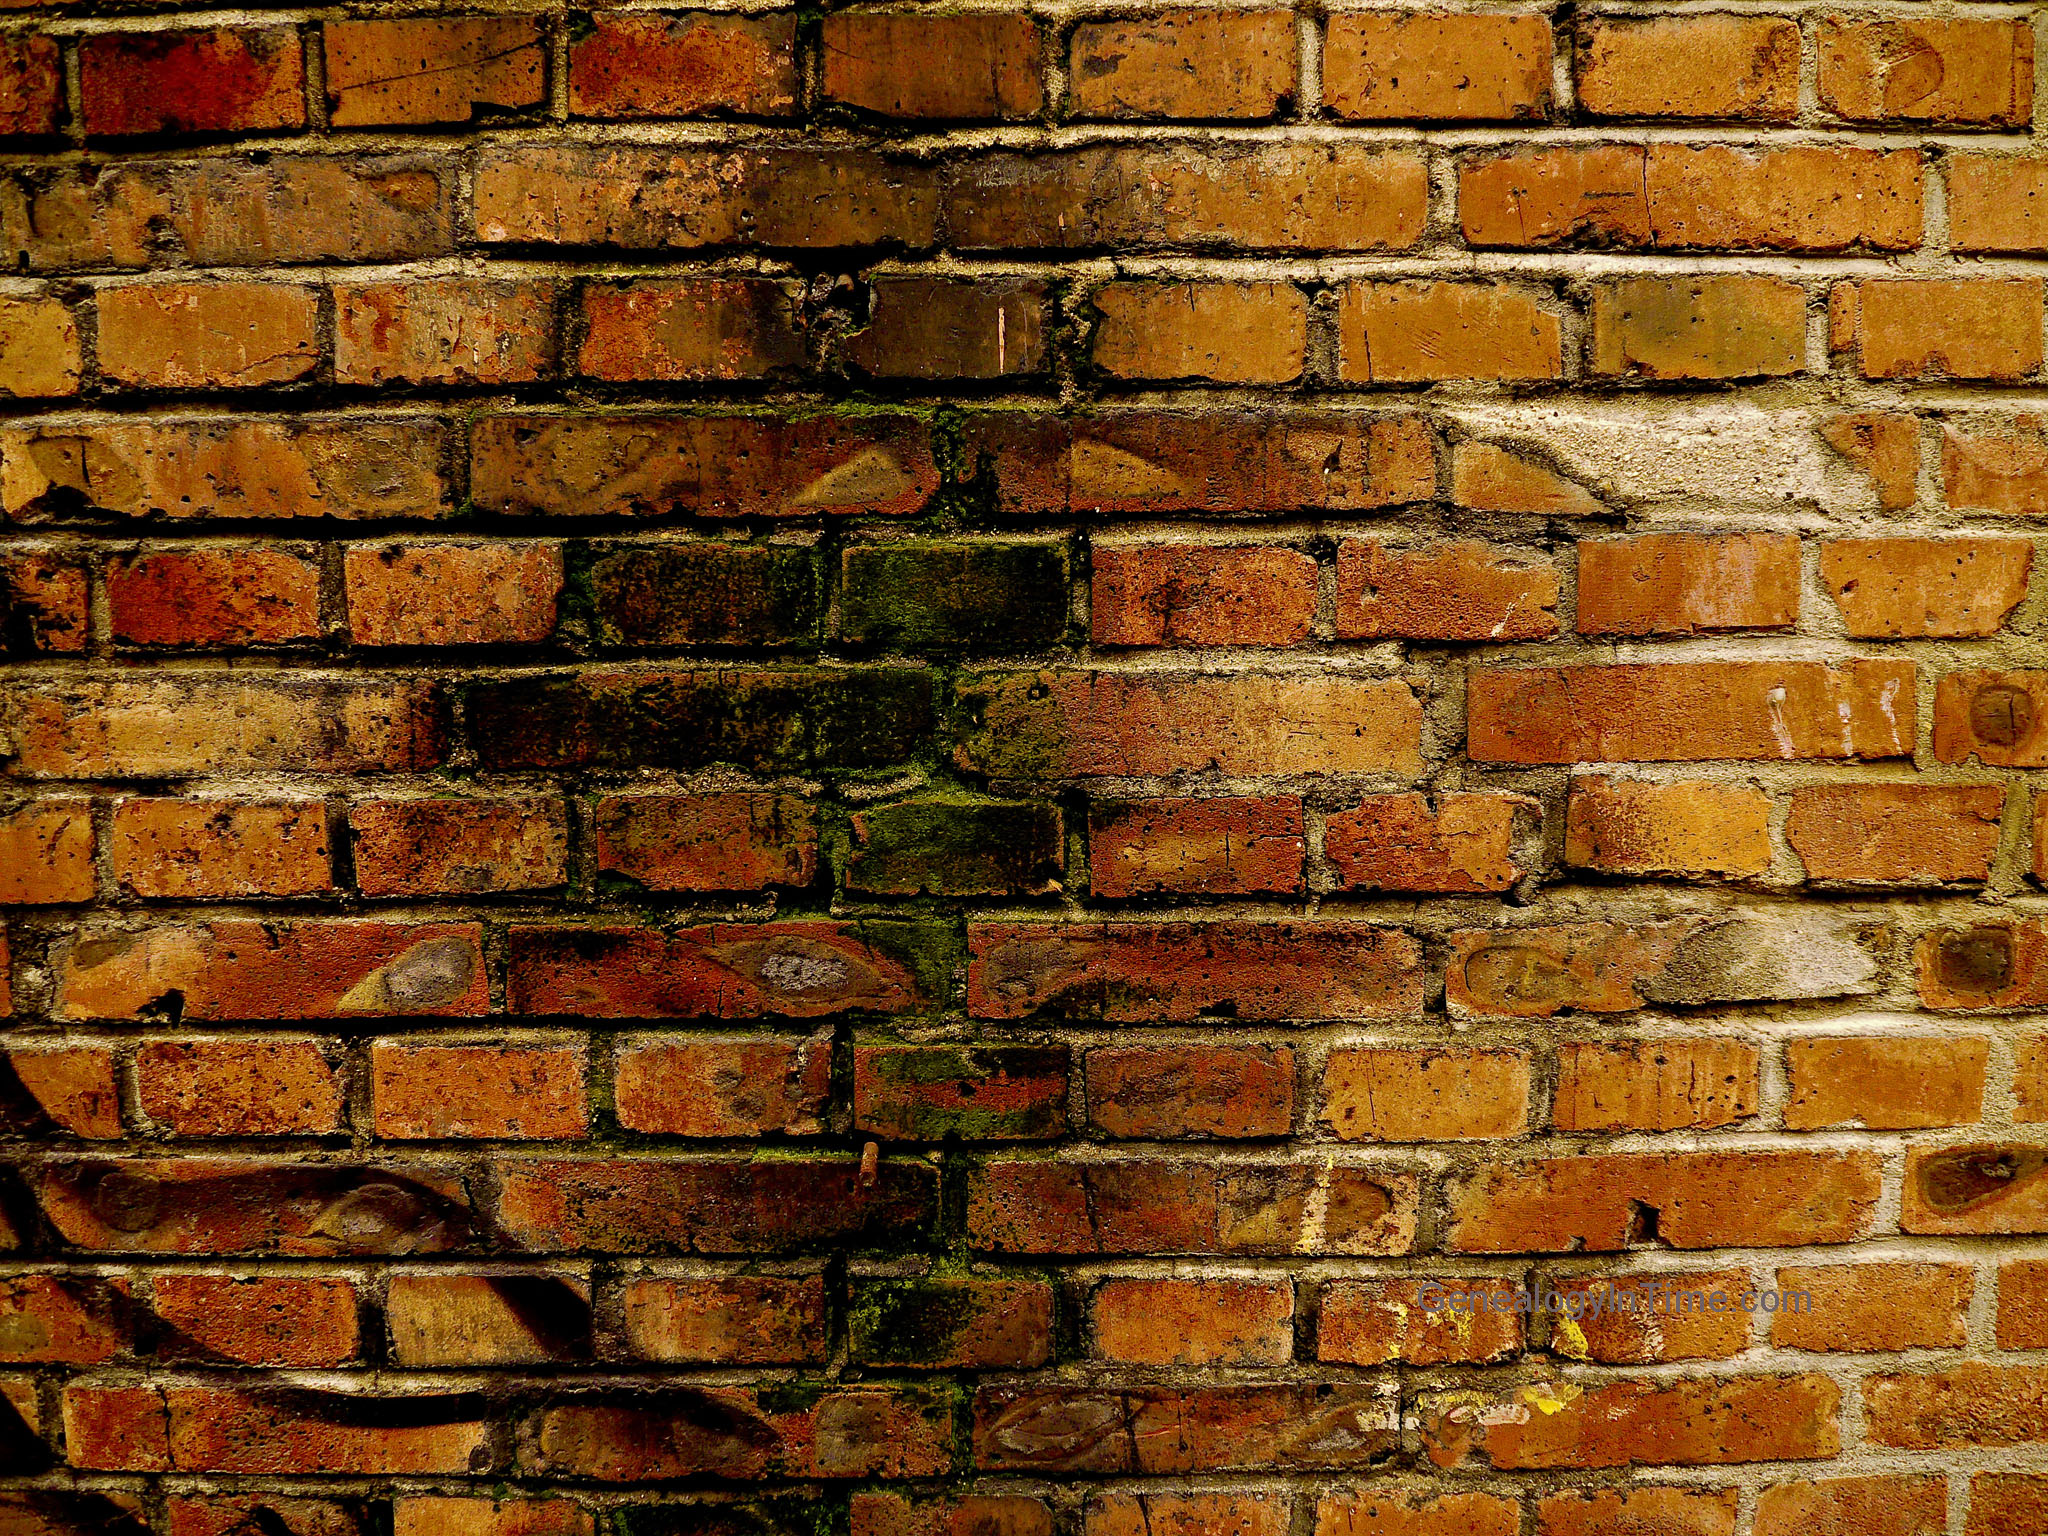 Image 41 - Old 1800s Factory Brick Wall